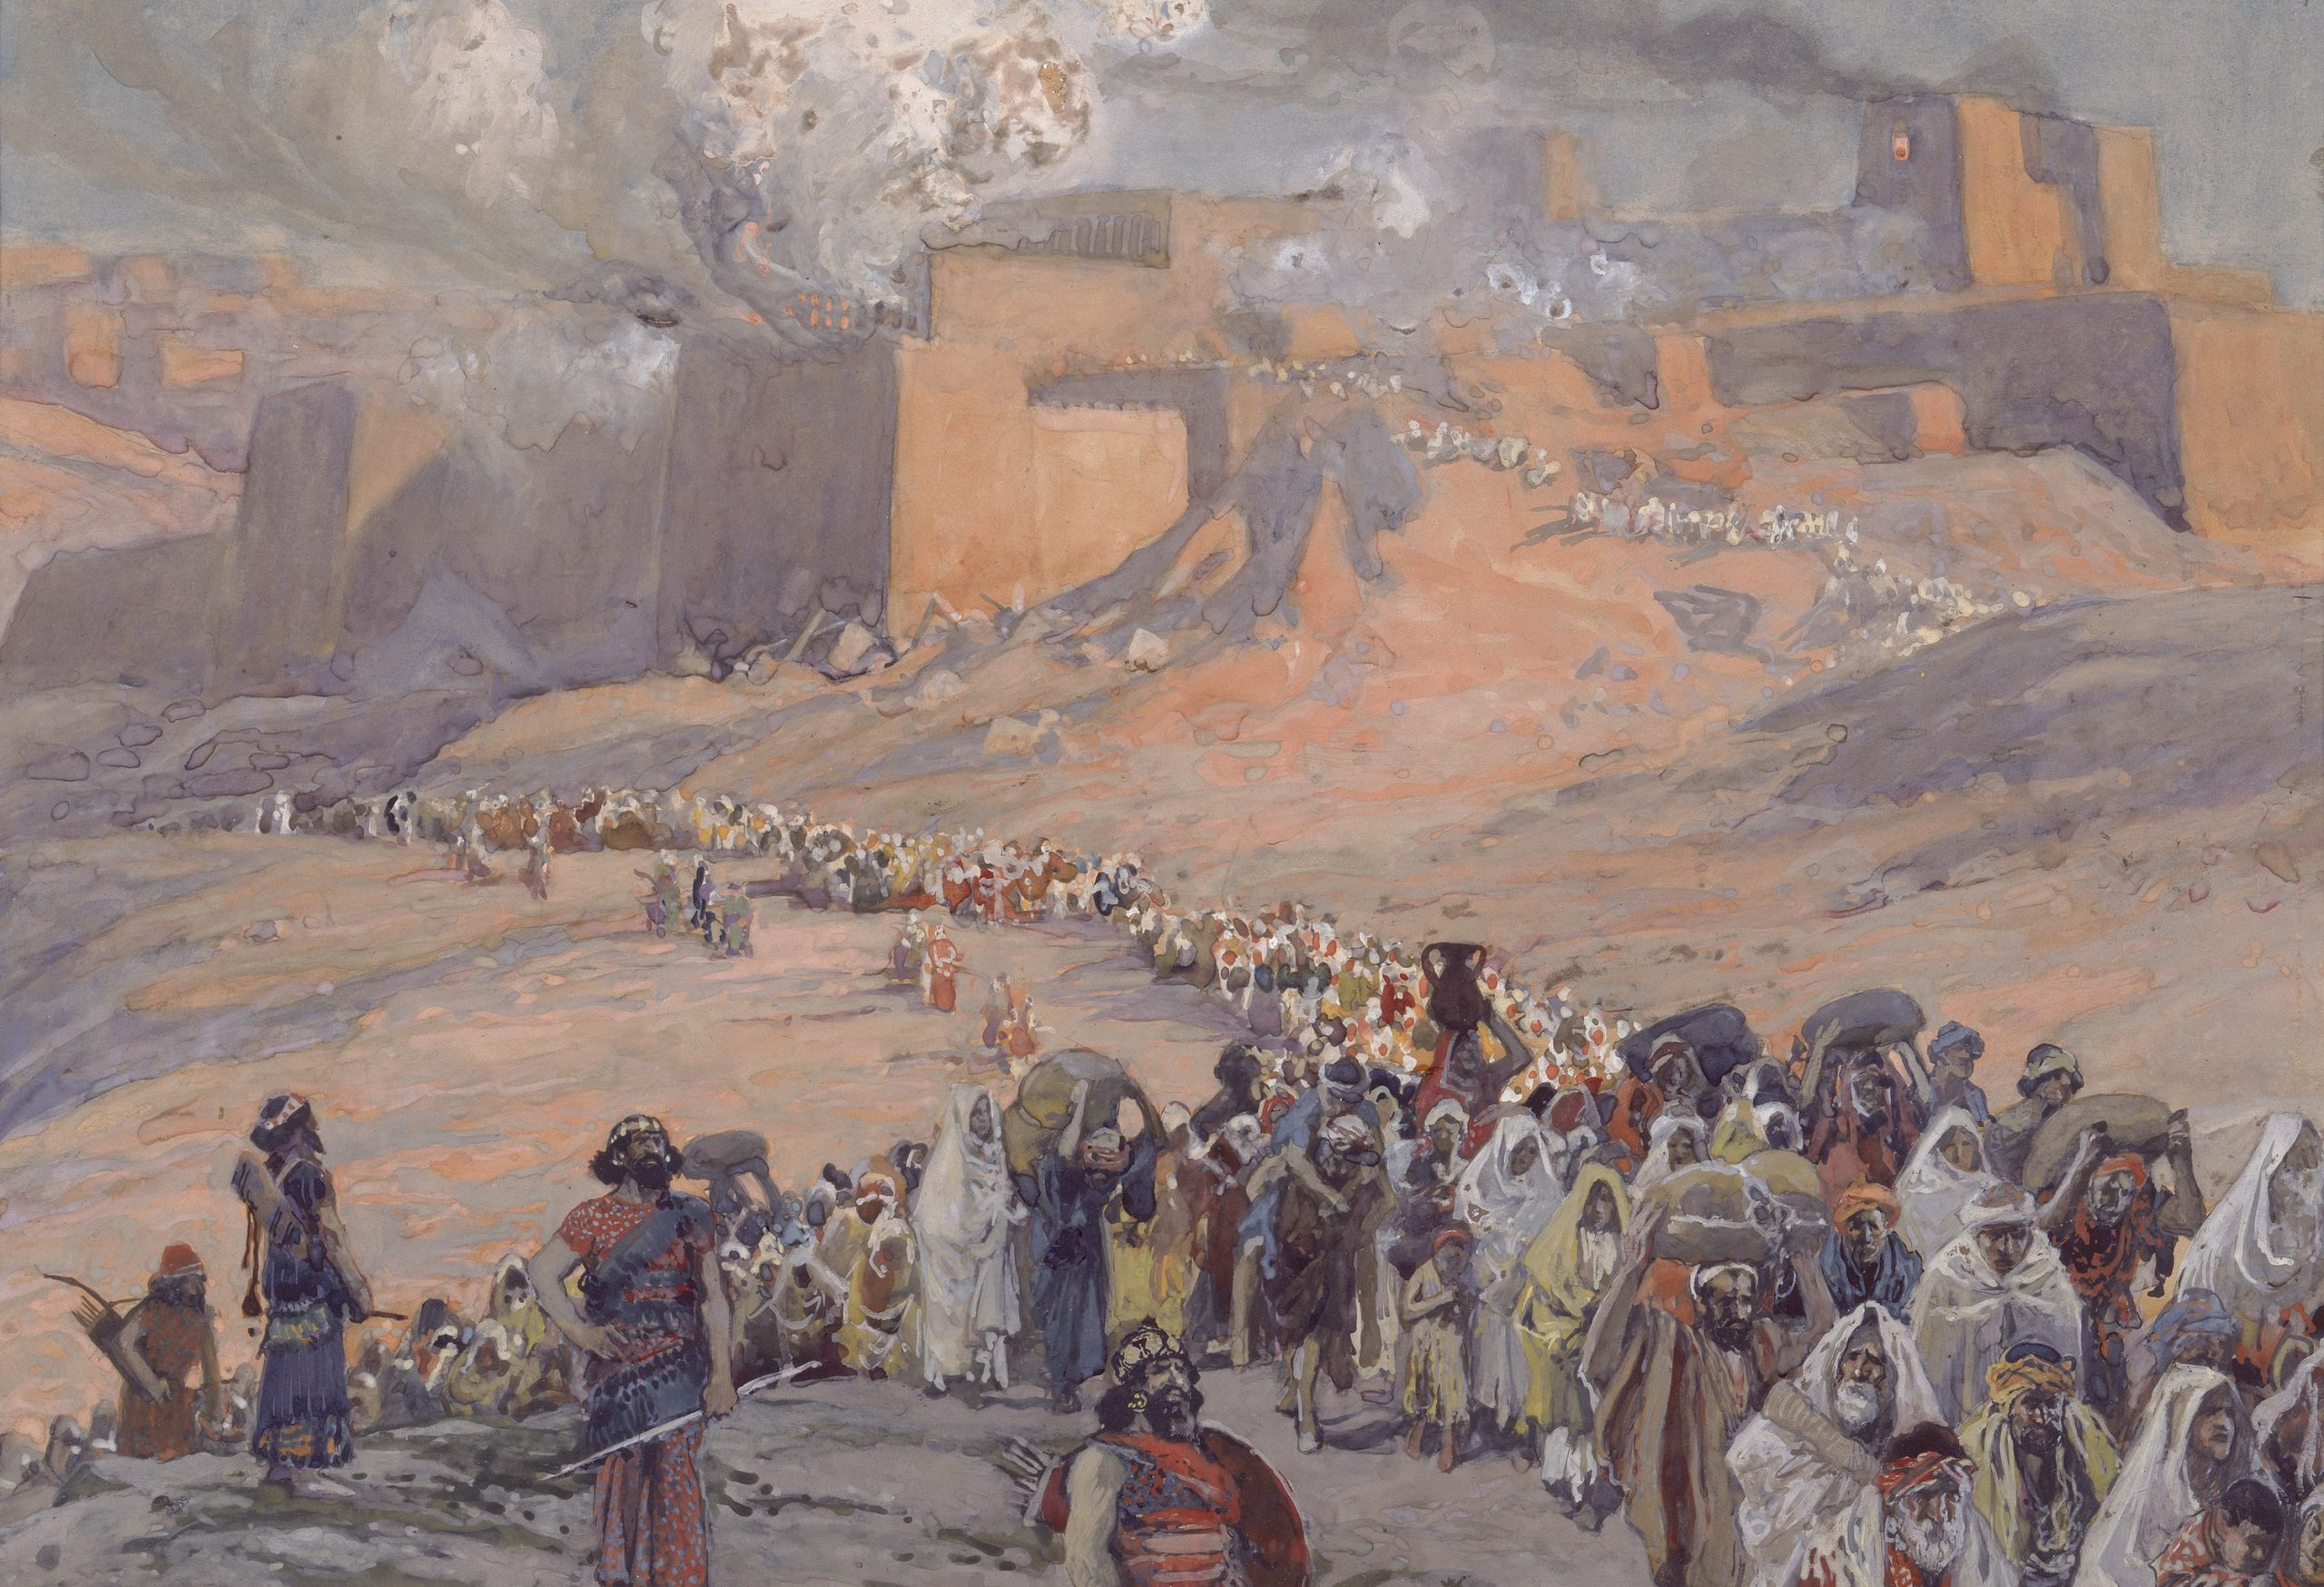 The Flight of the Prisoners (1896) by James Tissot; The exile of the Jews from Canaan to Babylon